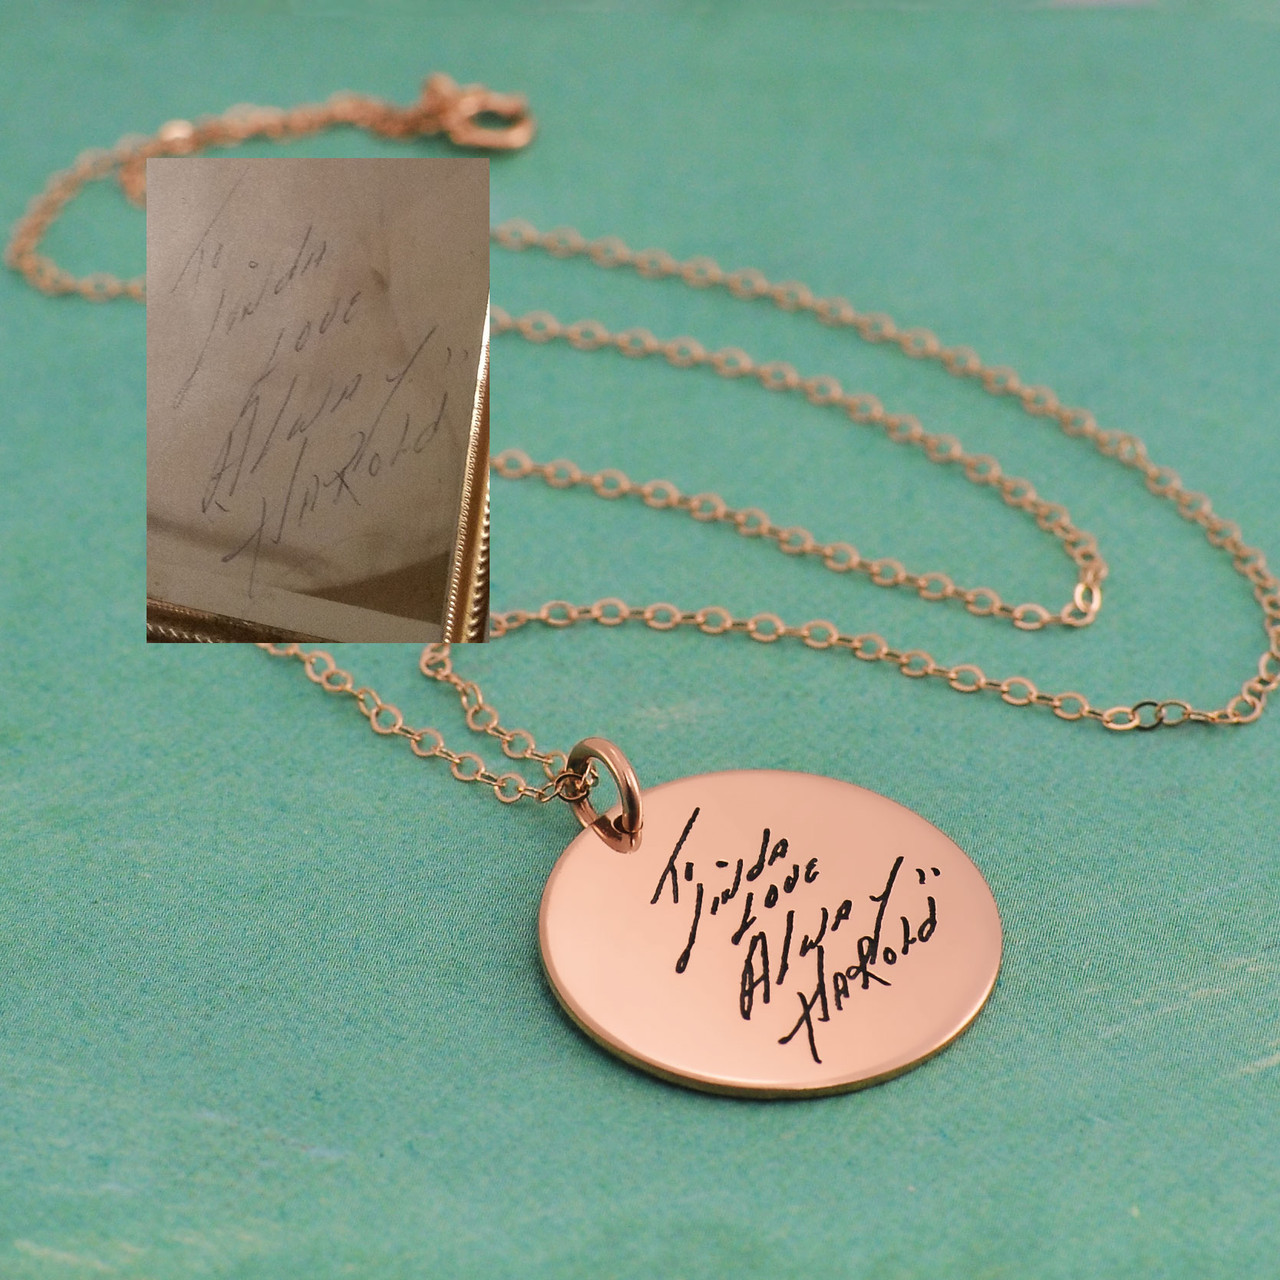 Rose gold disc handwriting necklace, shown with original handwritten note used to create it